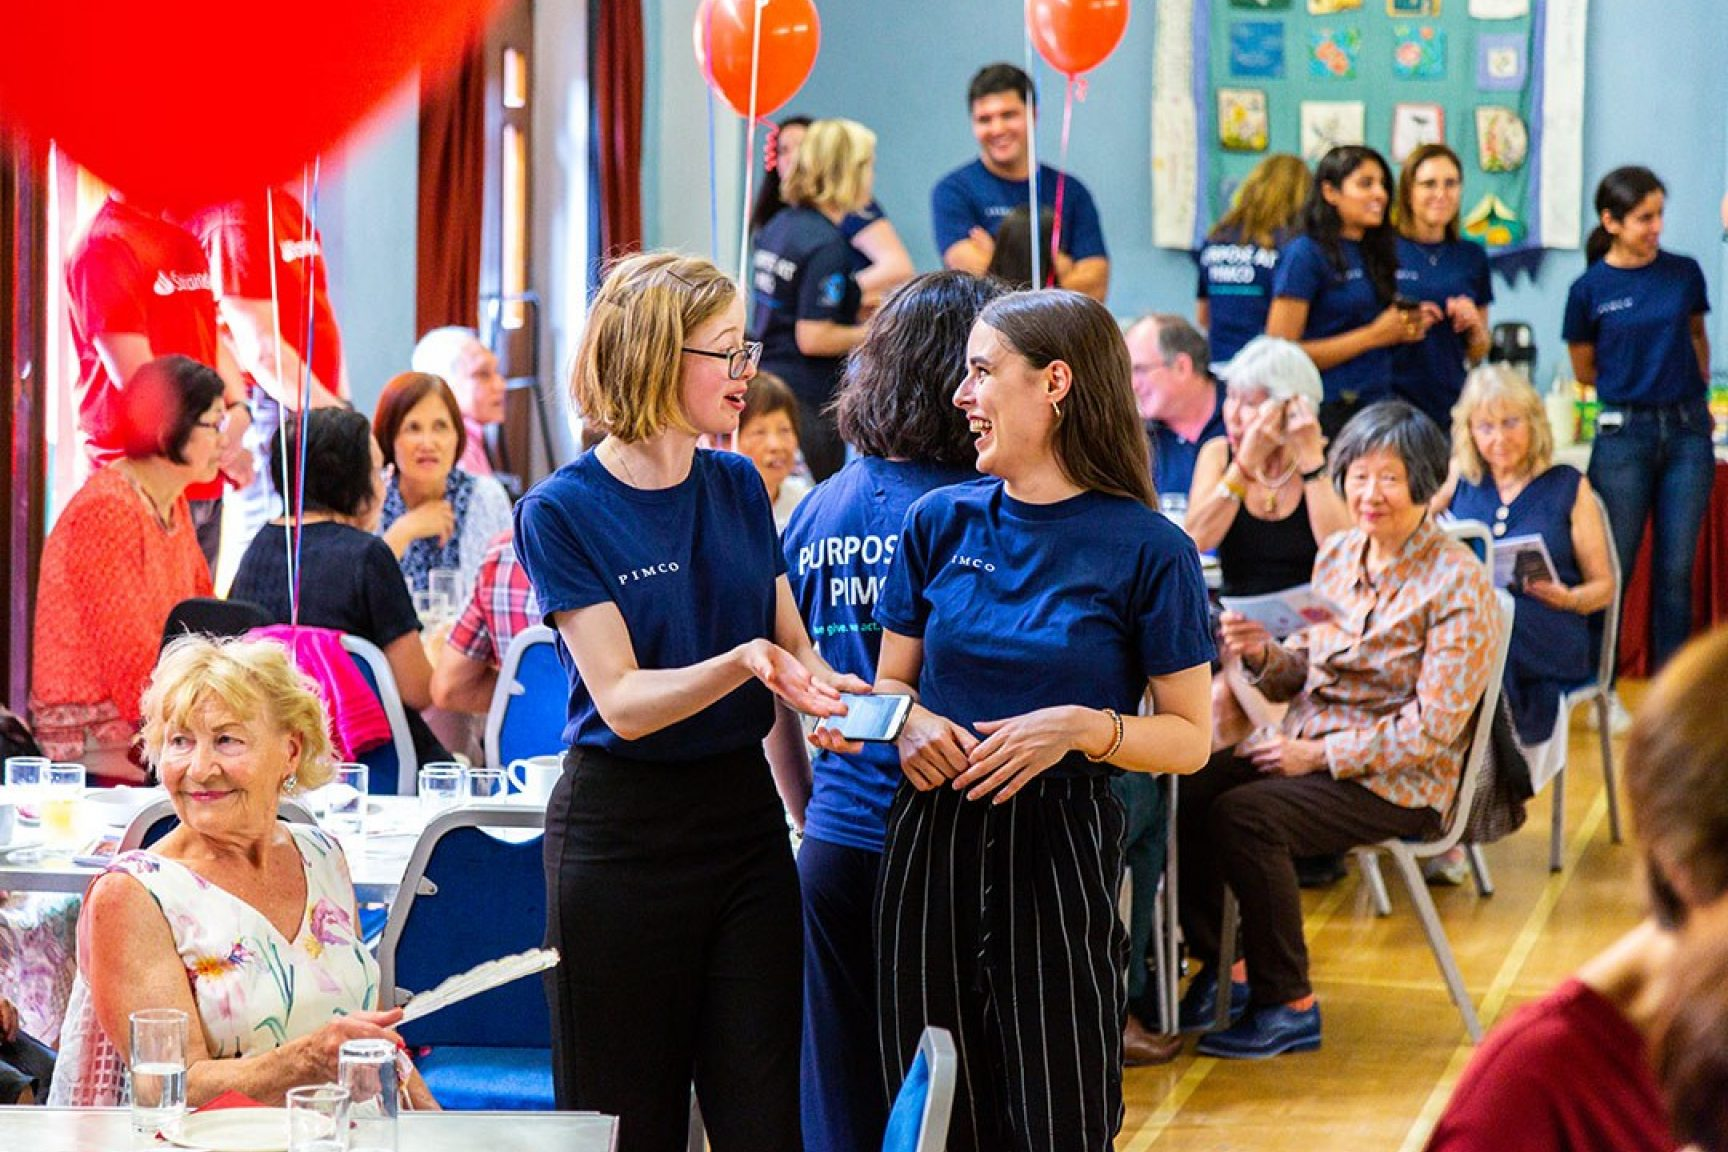 A community event, there are balloons, people seated at tables having a nice time. There a two volunteers chatting and smiling at each other in the middle of the photo.